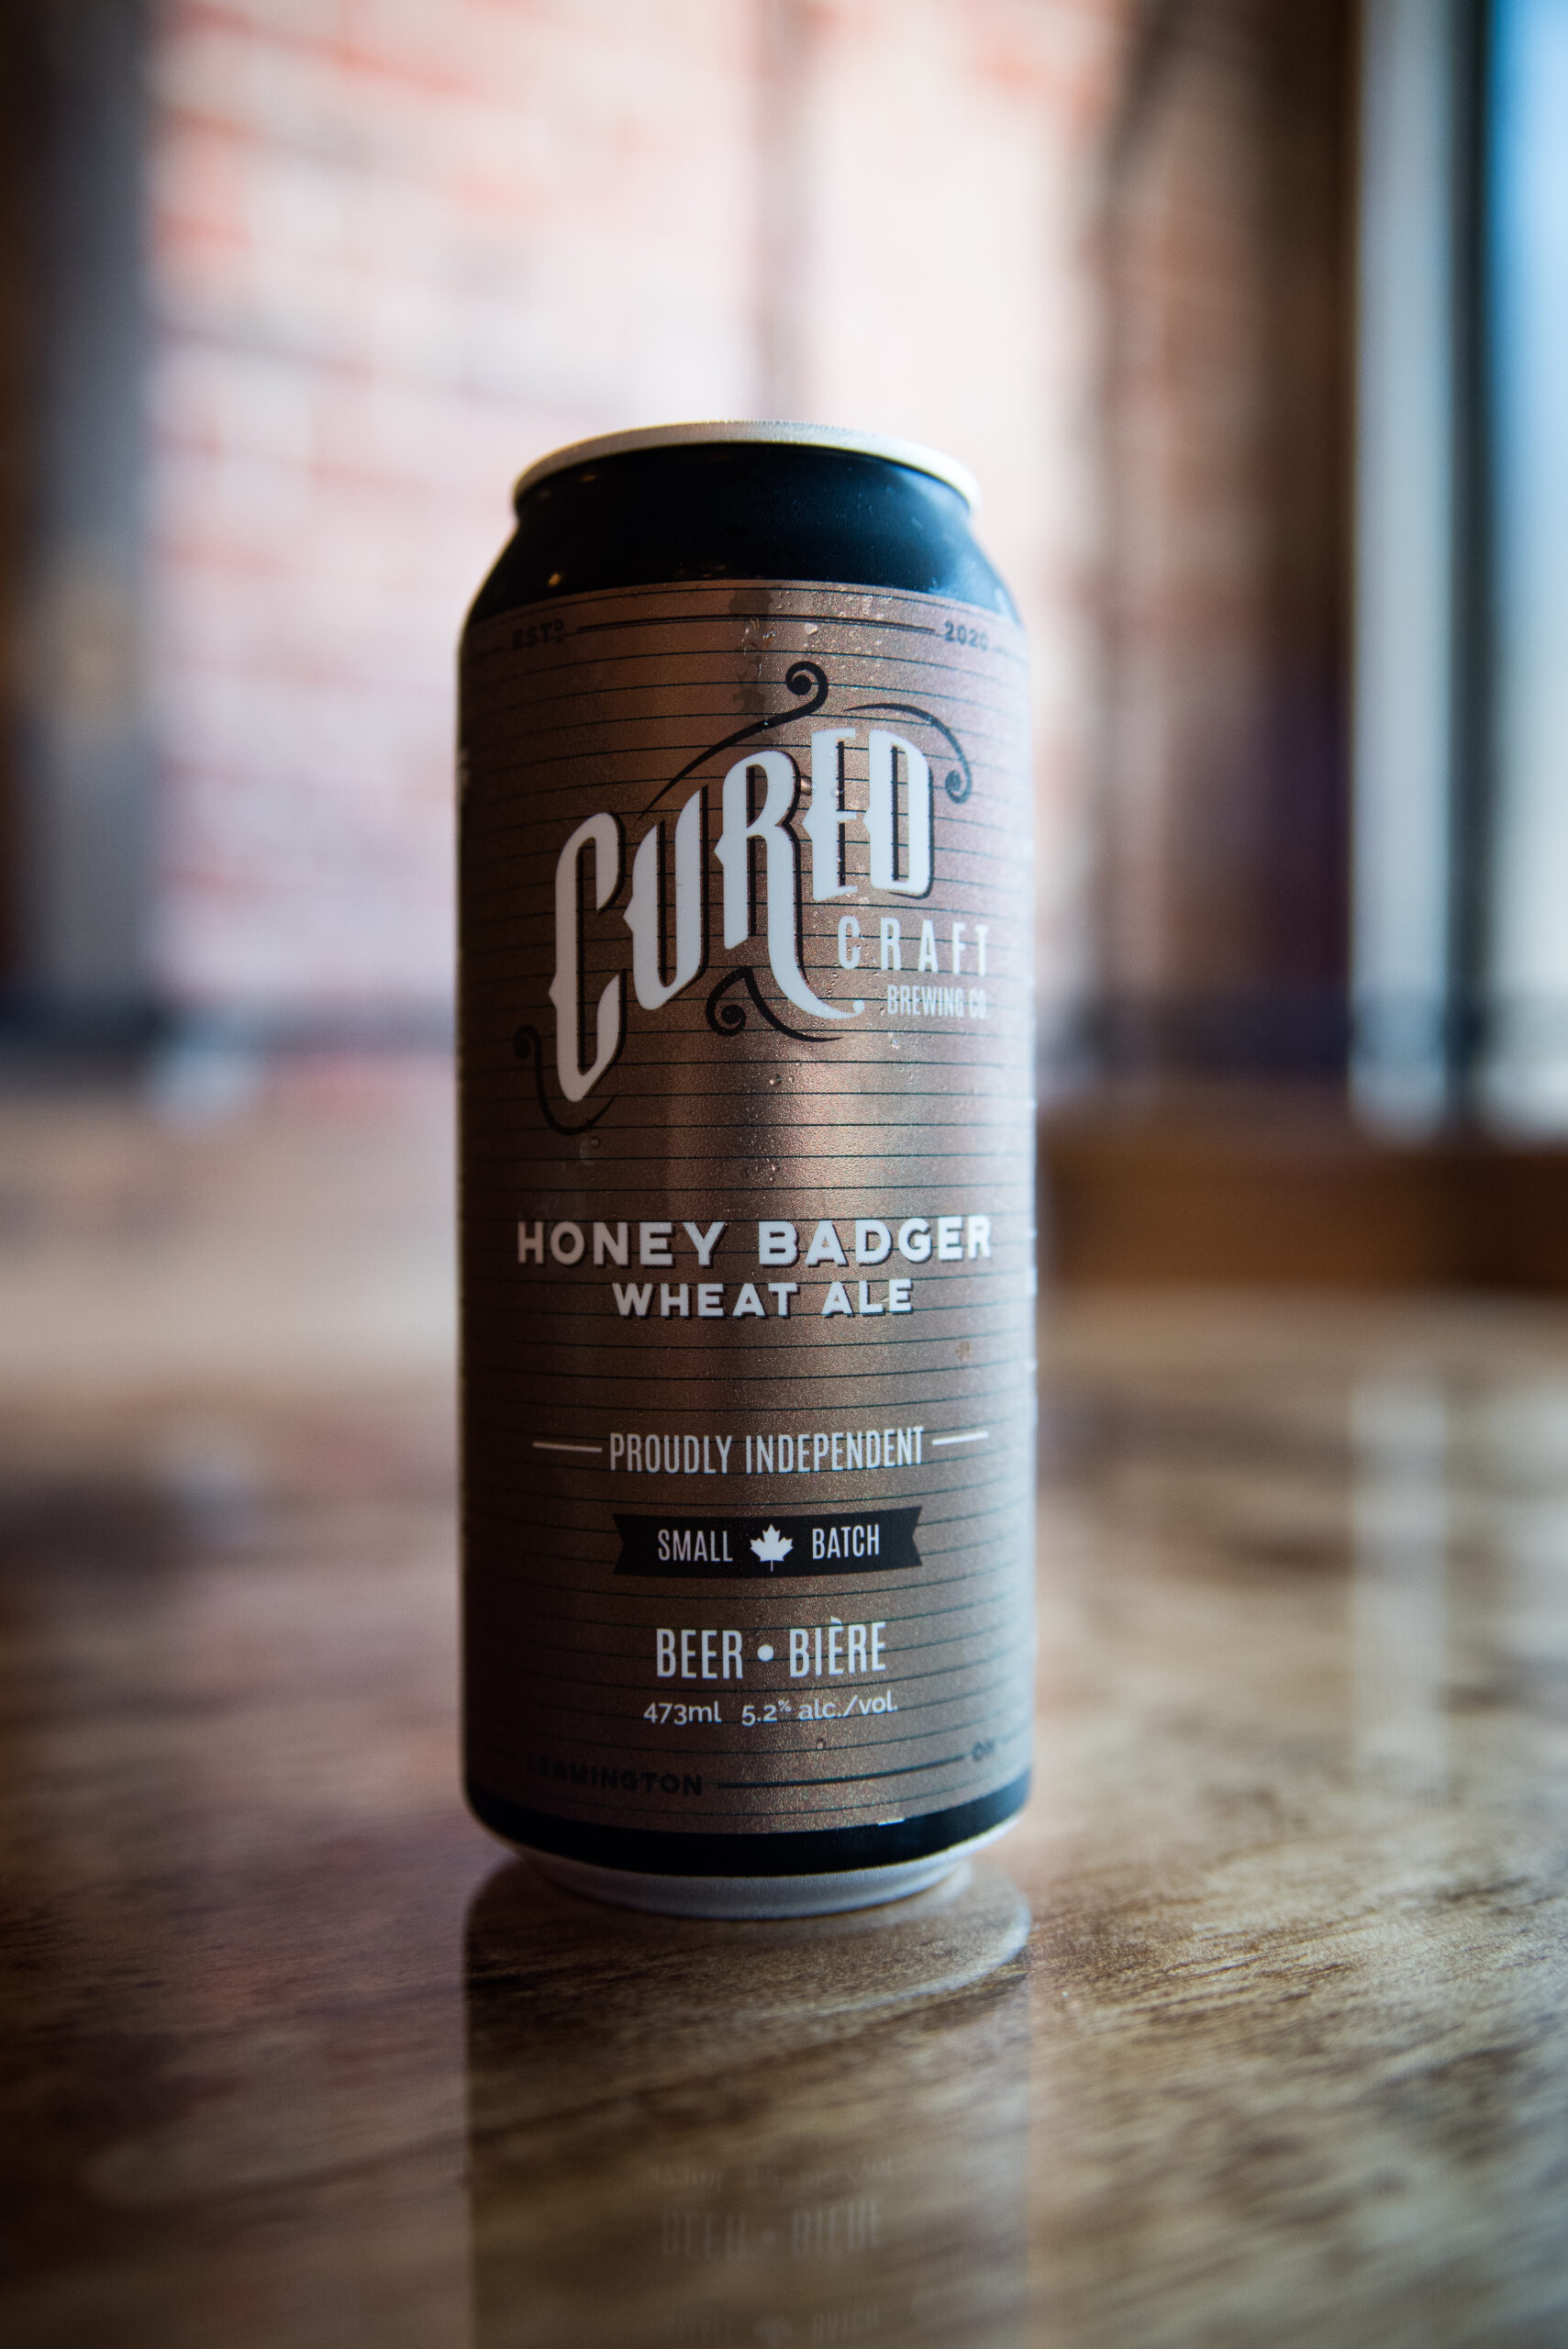 Honey Badger Wheat Ale from Cured Craft Brewing Co. in Leamington, Ontario.